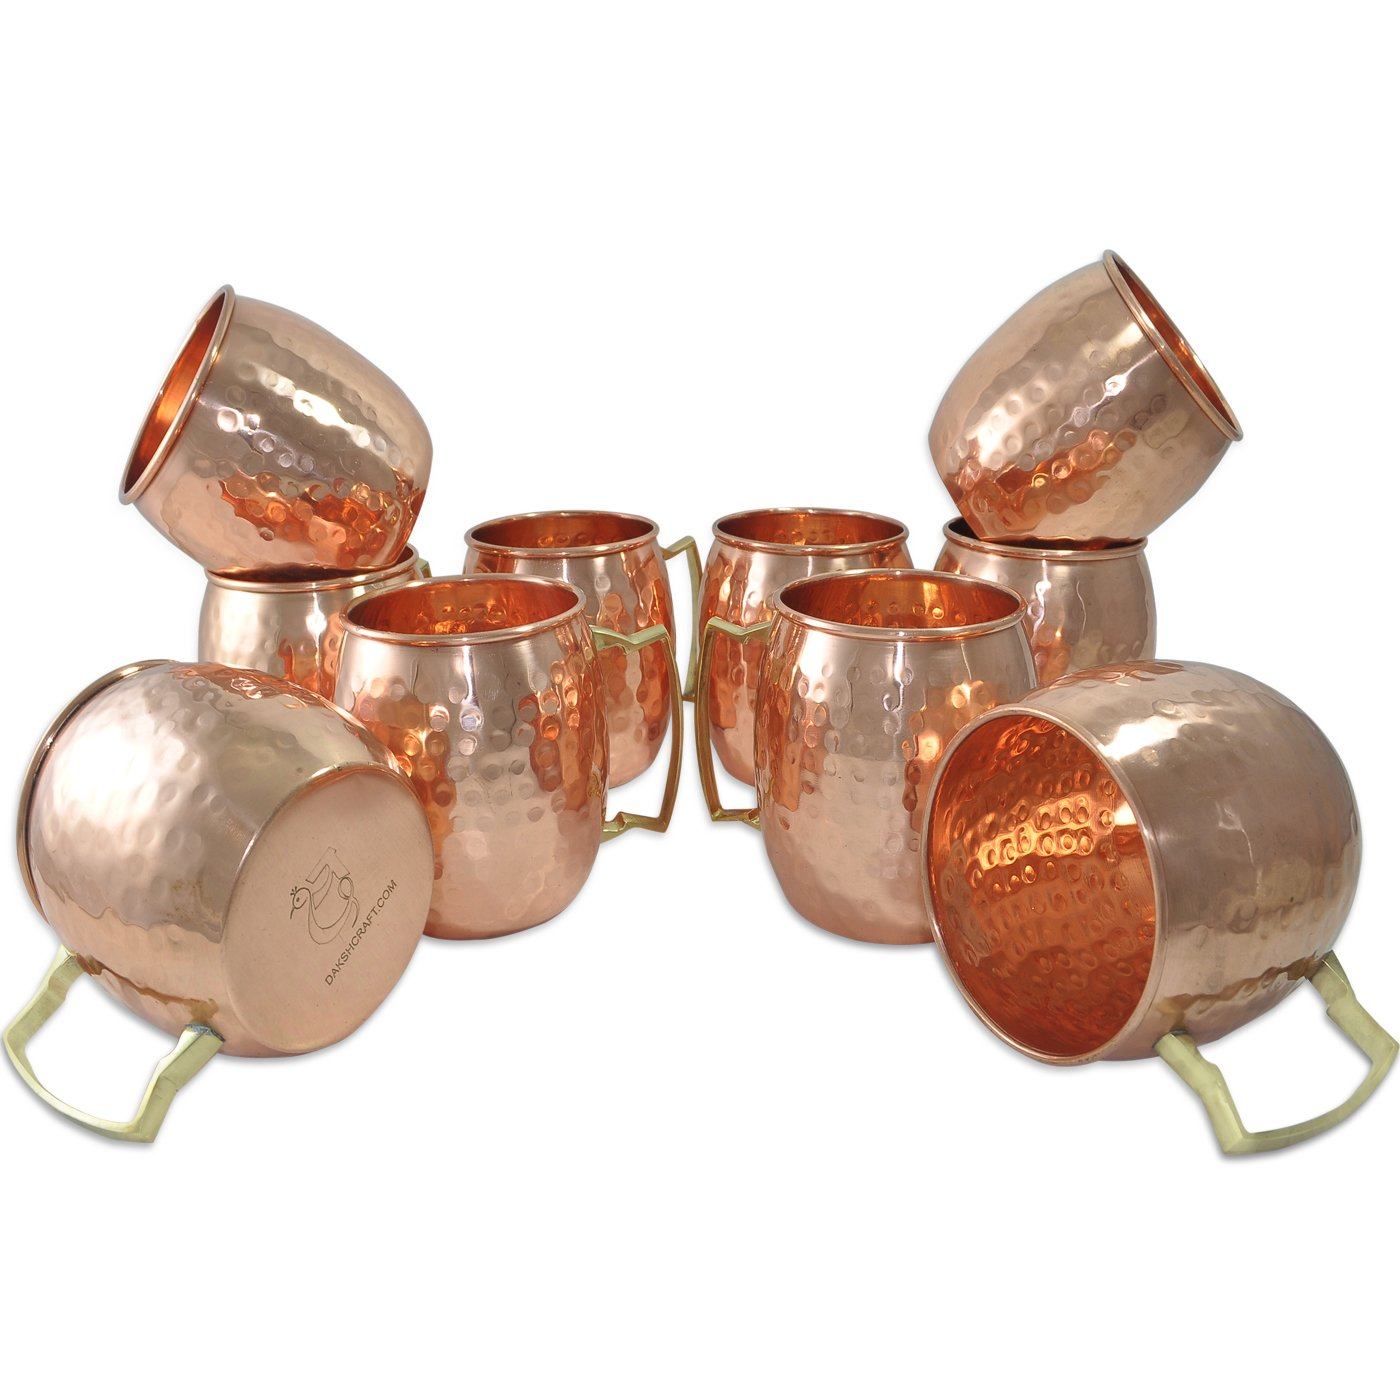 Dakshcraft Moscow Mule Copper Mugs Copper Drinking Cups and Mugs(Capacity - 500 ml / 16.90 oz), Set of 10